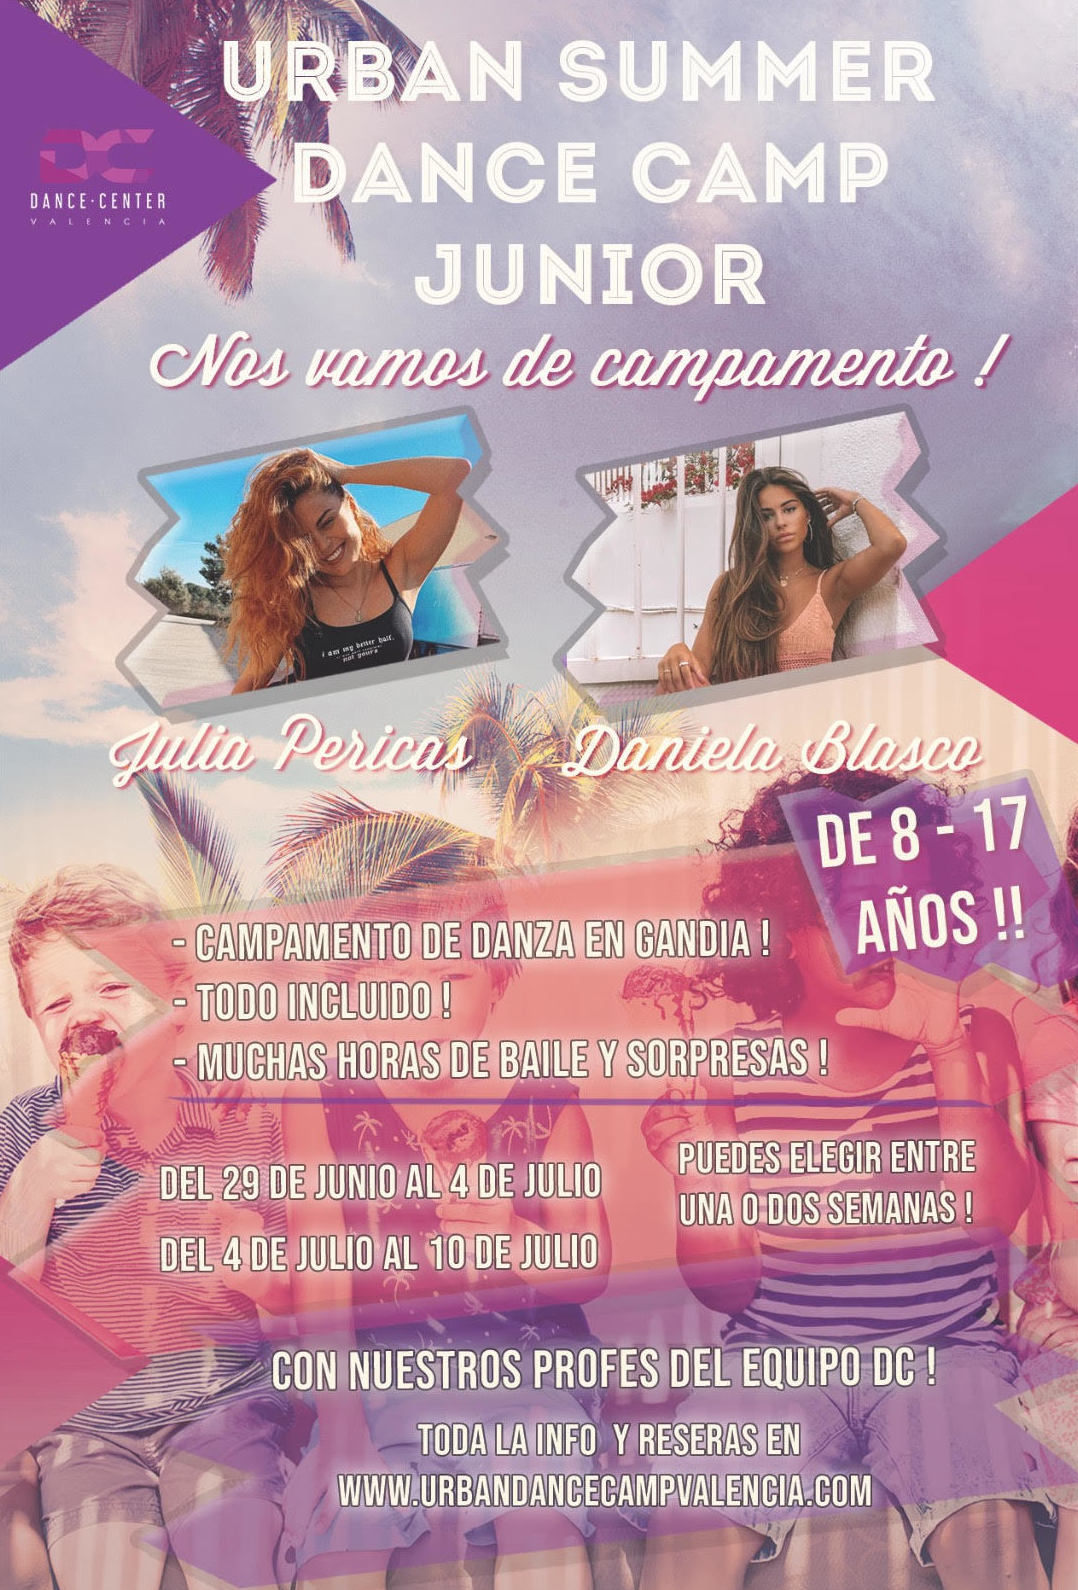 Urban Summer Dance Camp Junior 2020. Campamento de Verano 2020.: Clases y Campamentos de Dance Center Valencia